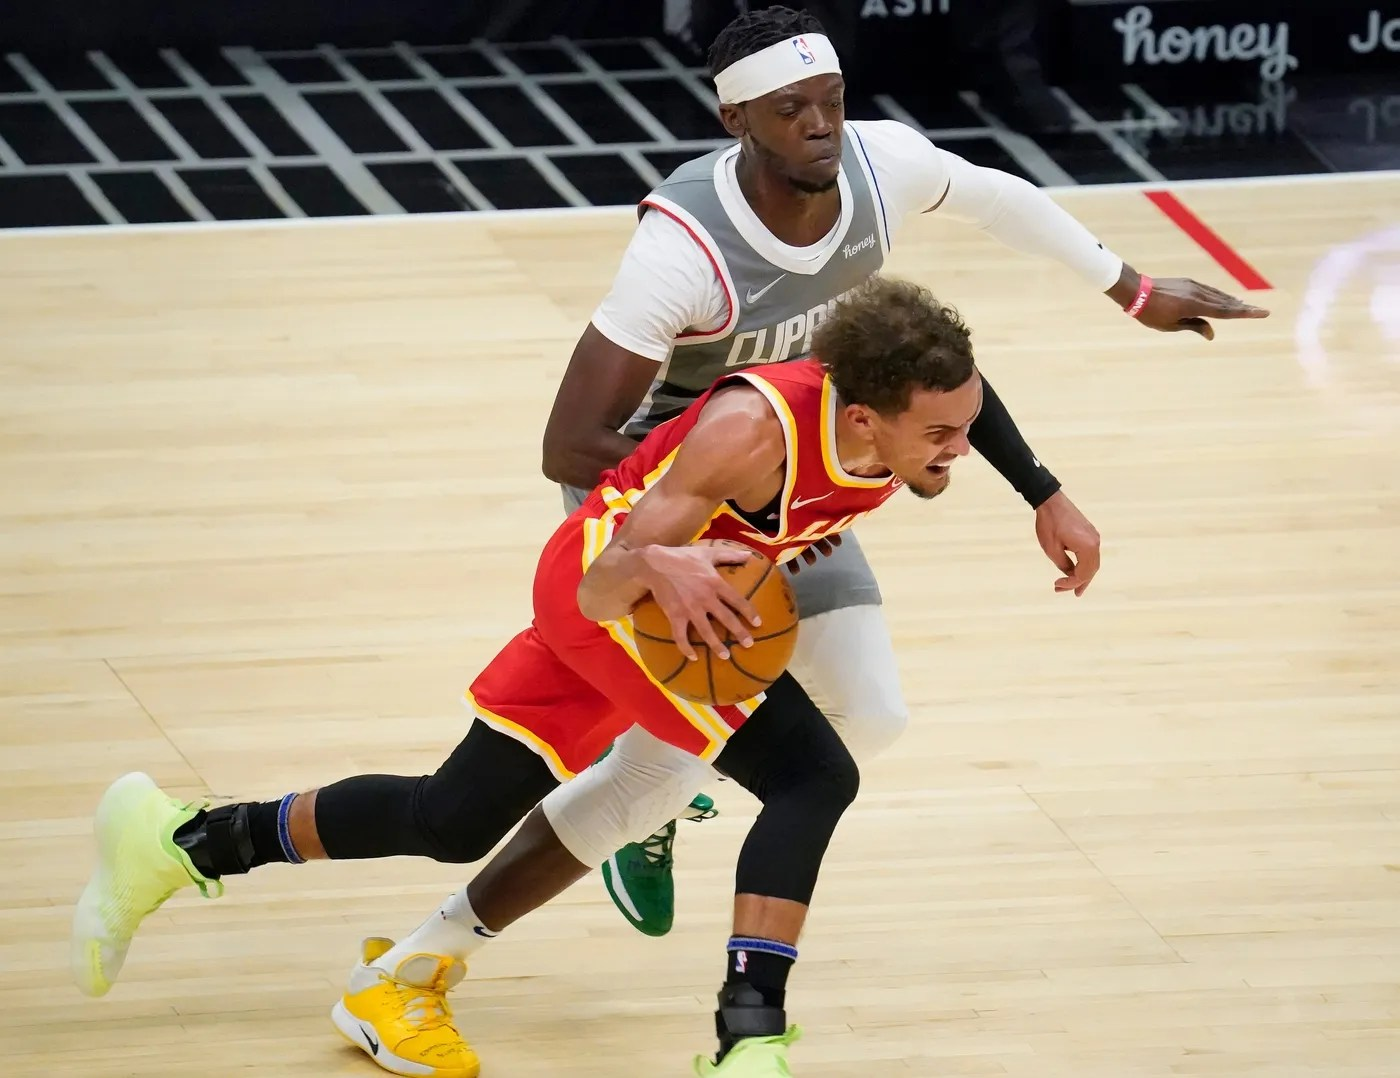 Mar 22, 2021; Los Angeles, California, USA; Atlanta Hawks guard Trae Young (11) dribbles the ball past LA Clippers guard Reggie Jackson (1) during the second quarter at Staples Center.